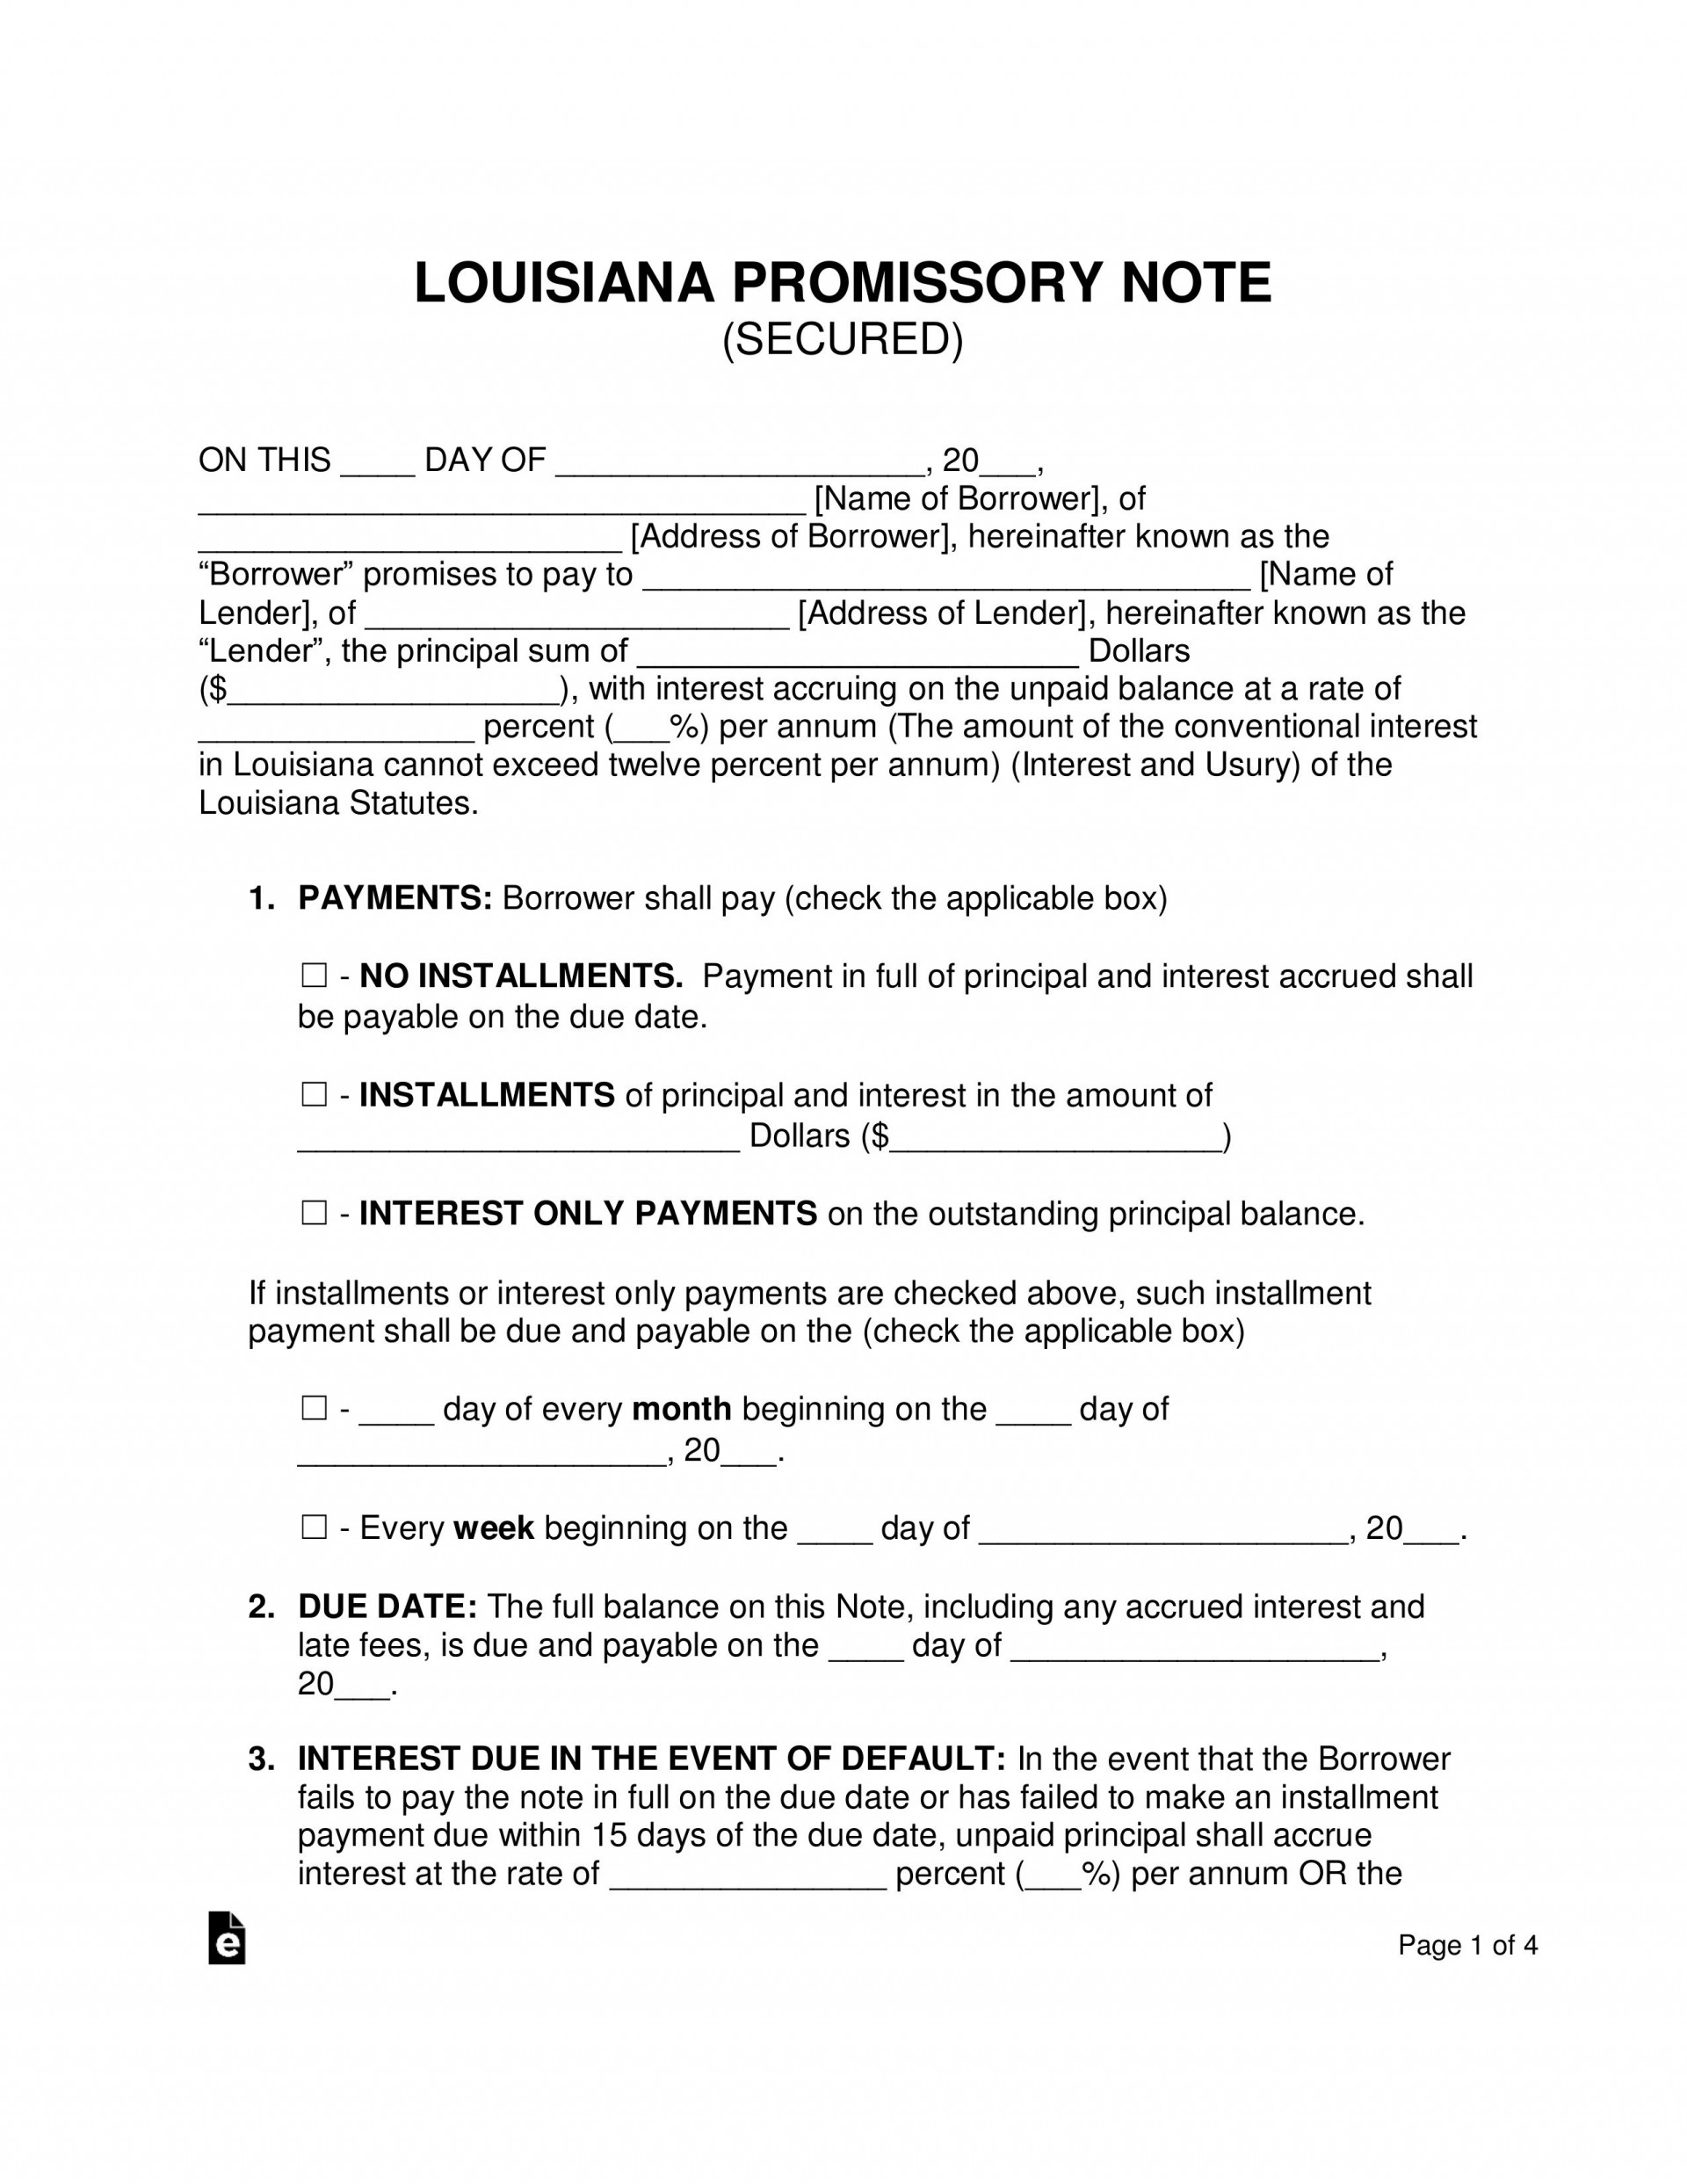 002 Wonderful Loan Promissory Note Template High Resolution  Family Busines Format For Hand1920